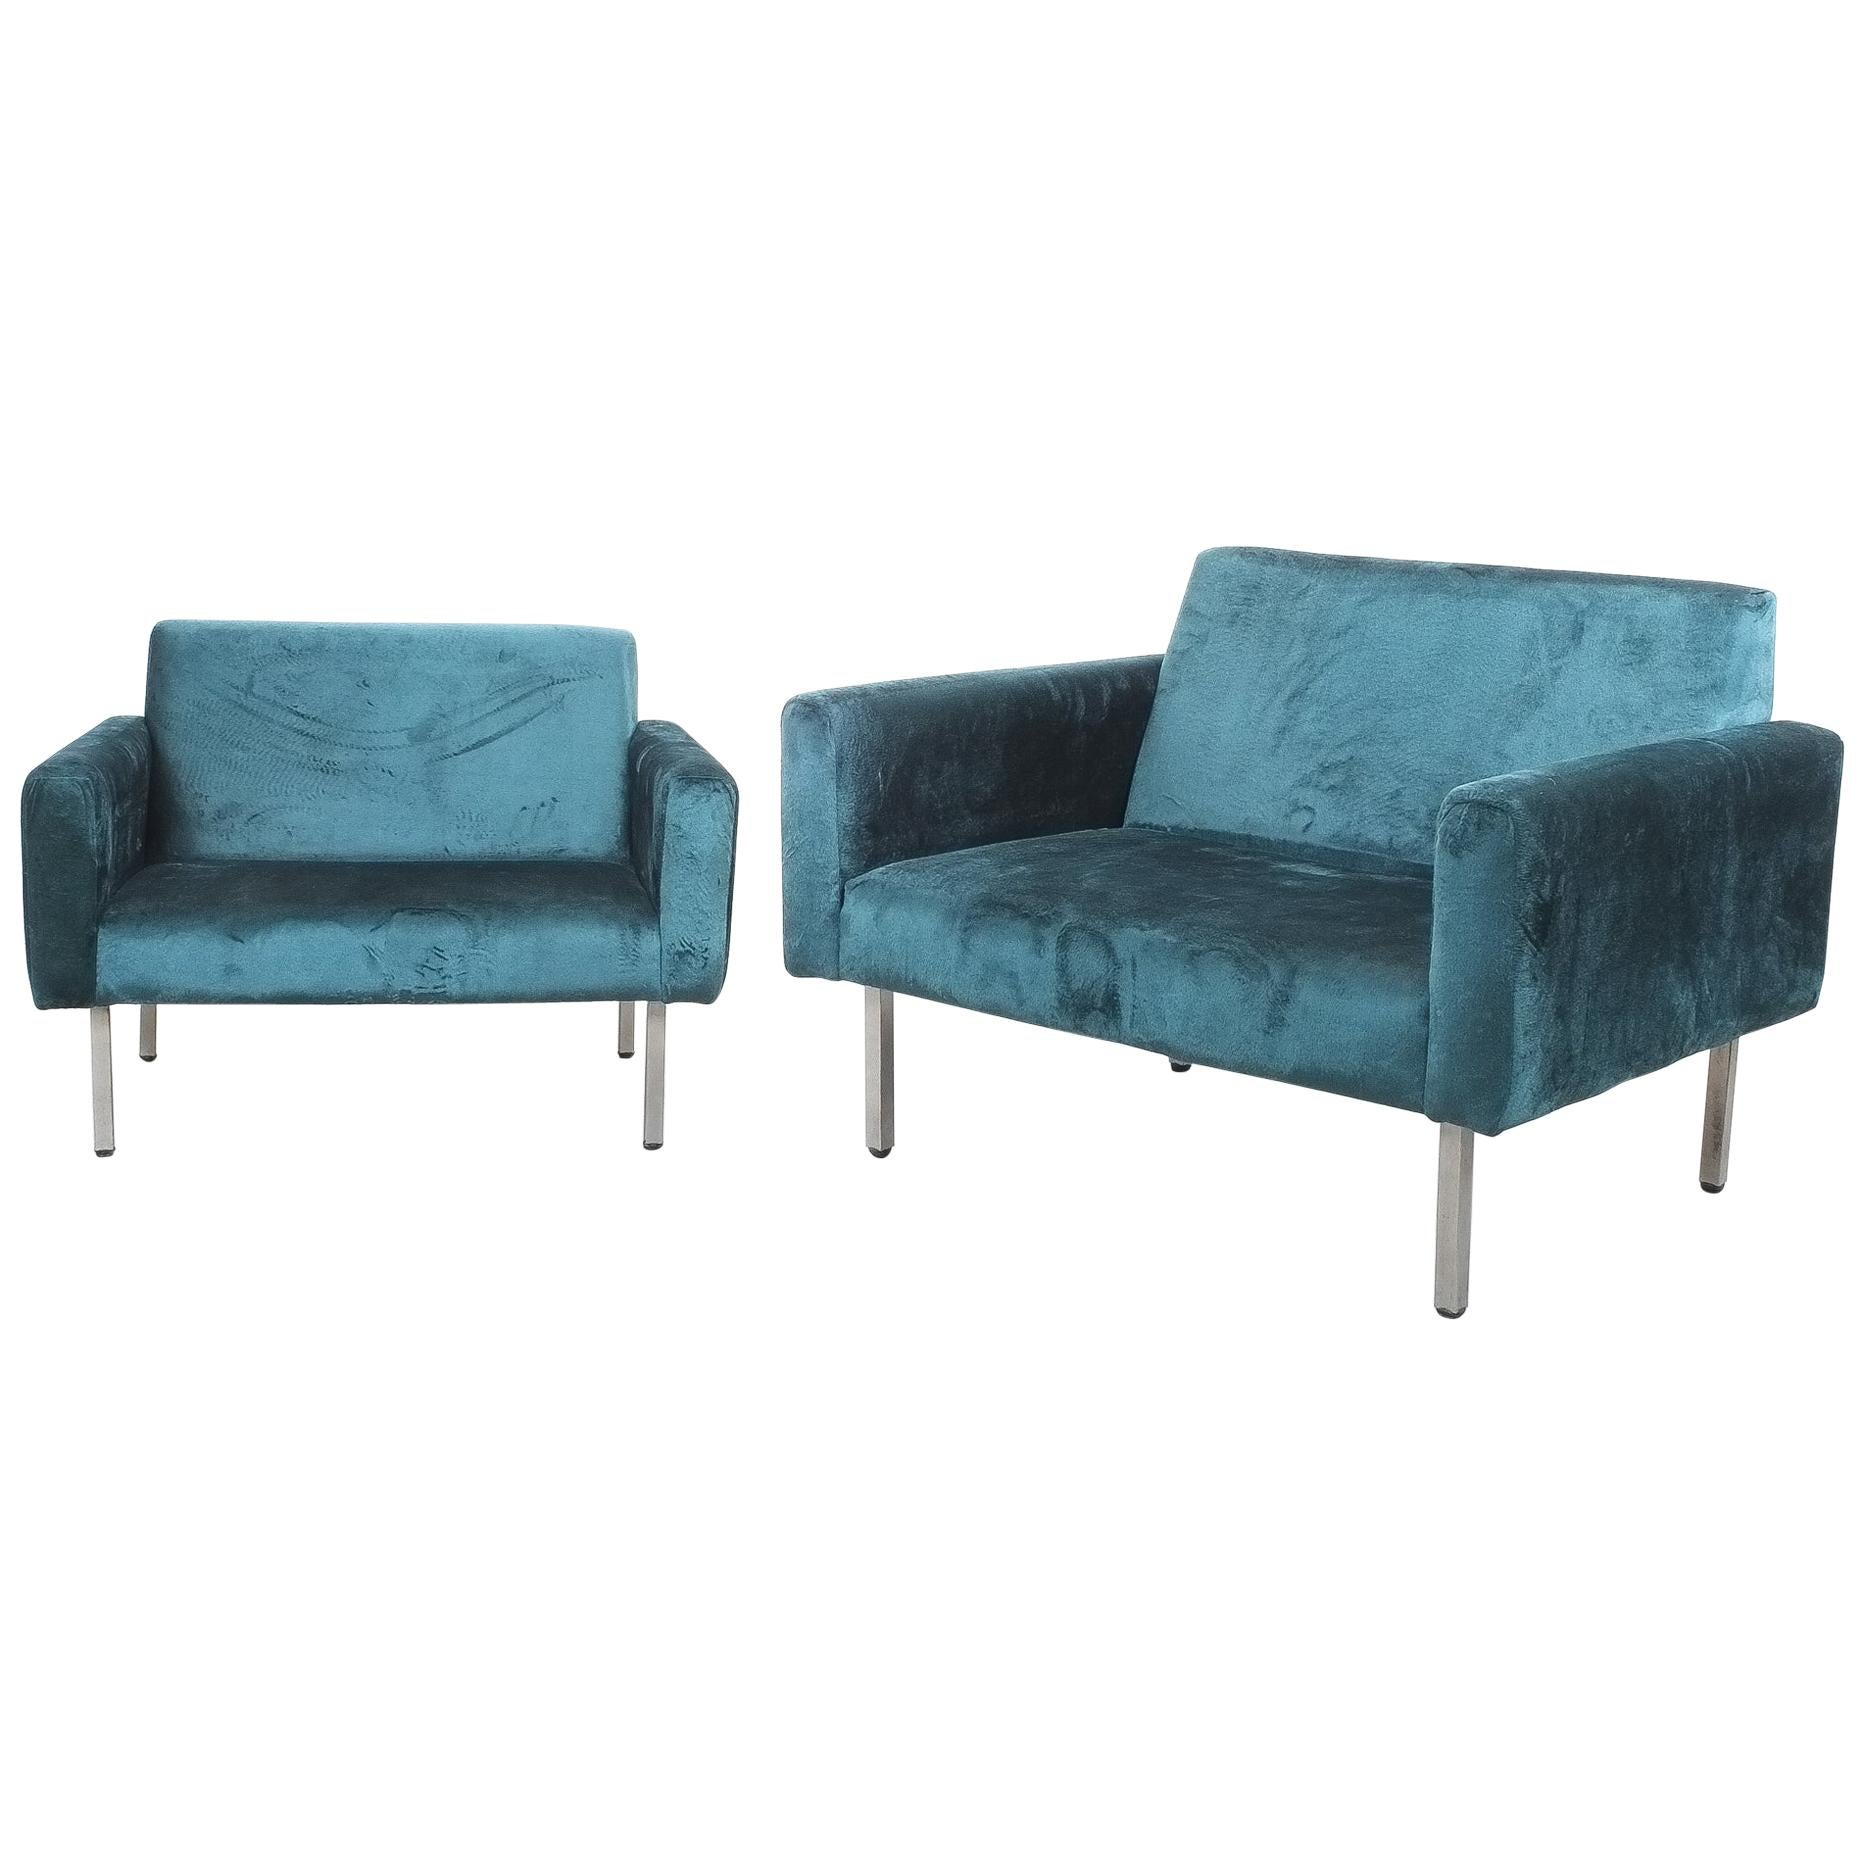 Oversized Pair George Nelson Chairs for Herman Miller, circa 1965